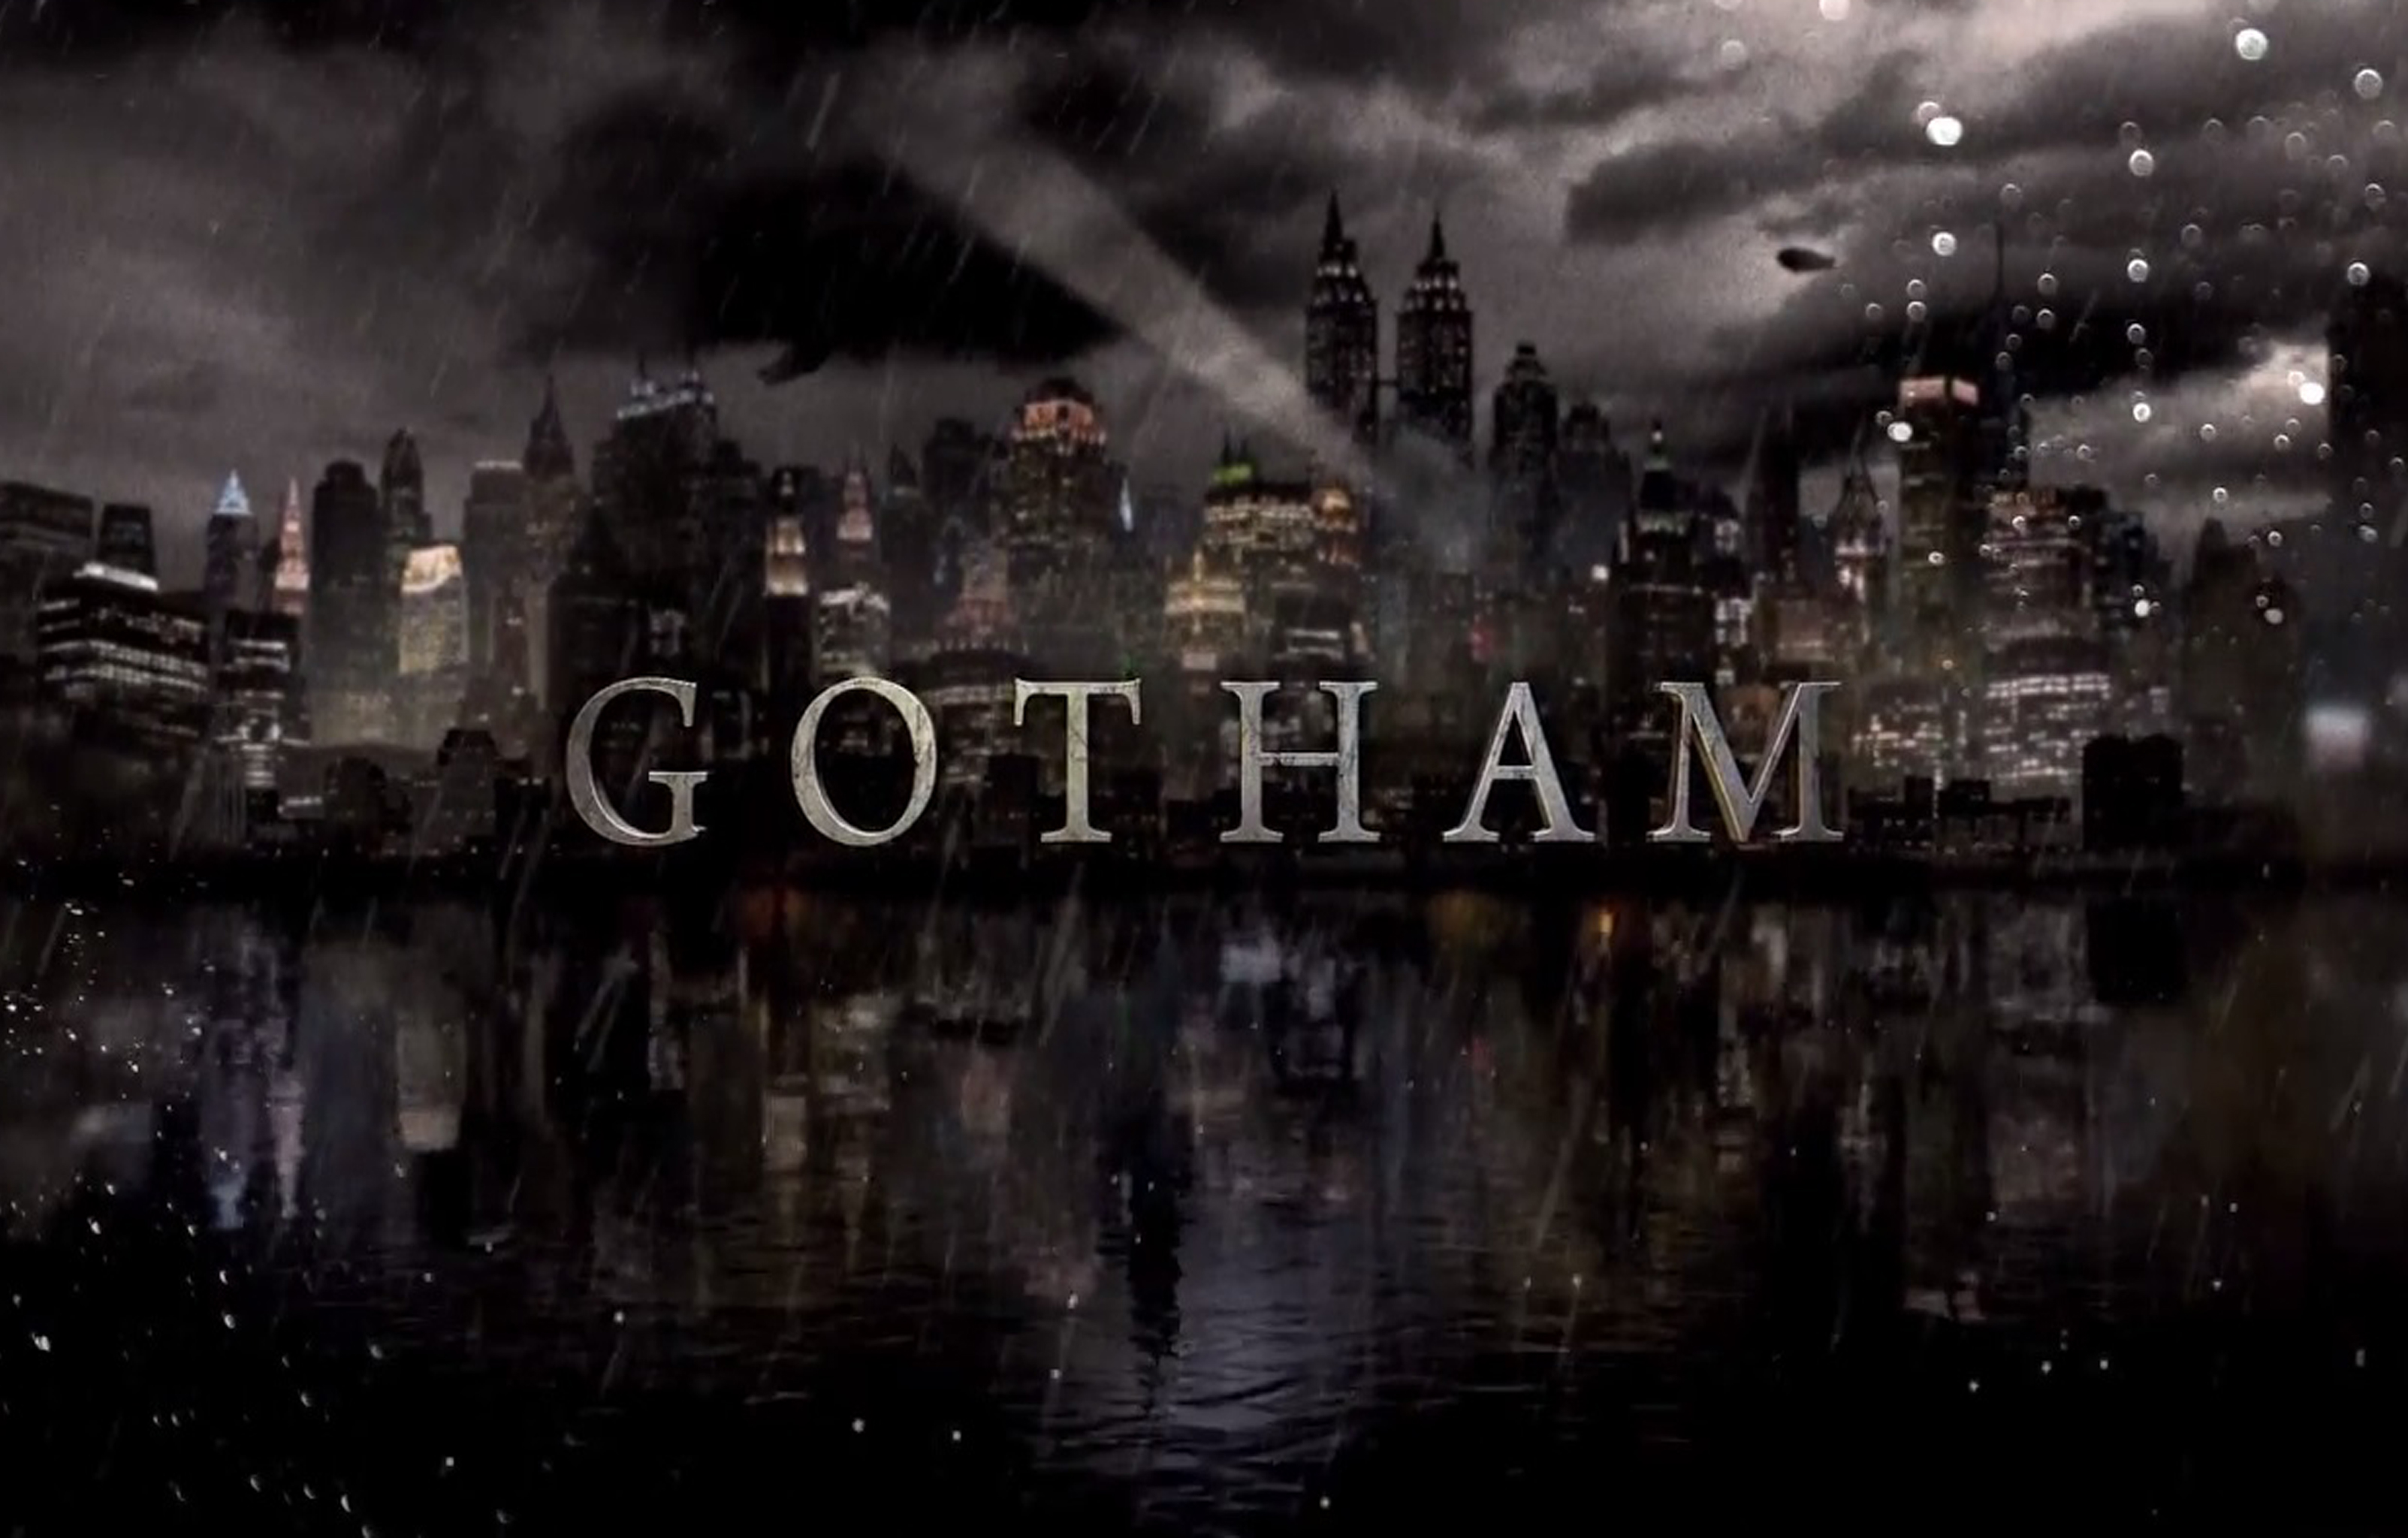 Gotham-TV-Show-batman-37095290-3206-2048.jpg